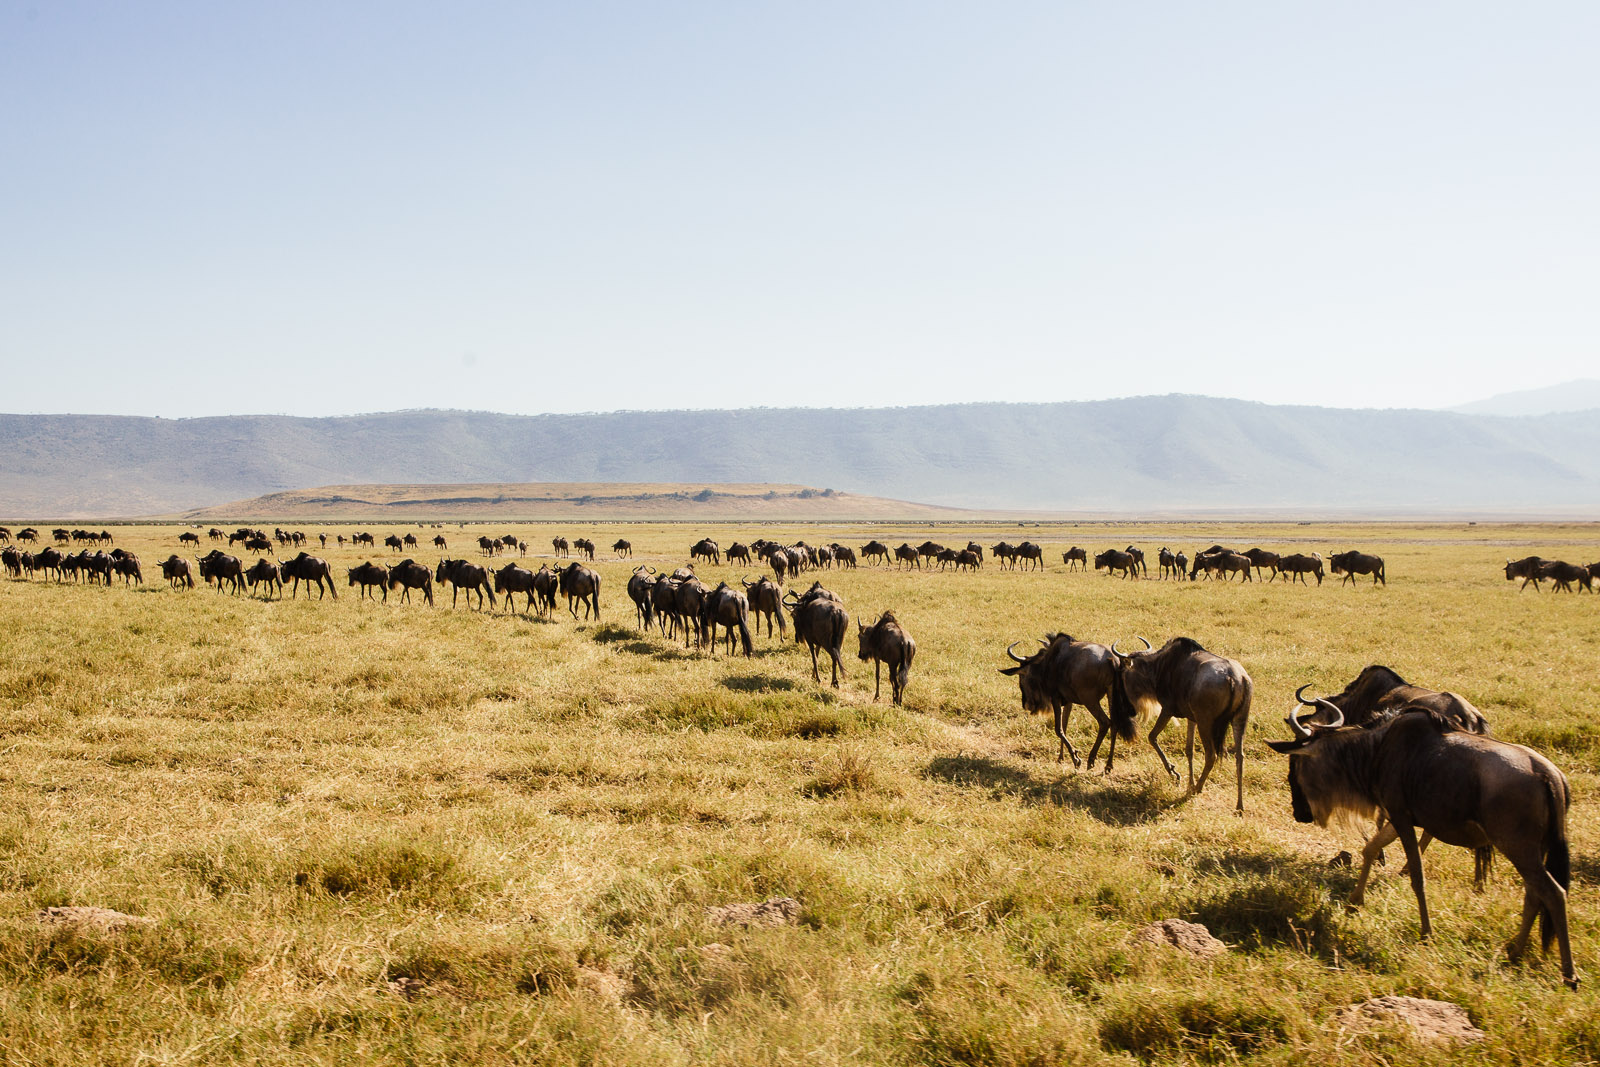 Line of wildebeest travelling in a migratory circle from Tanzania to Kenya, Africa